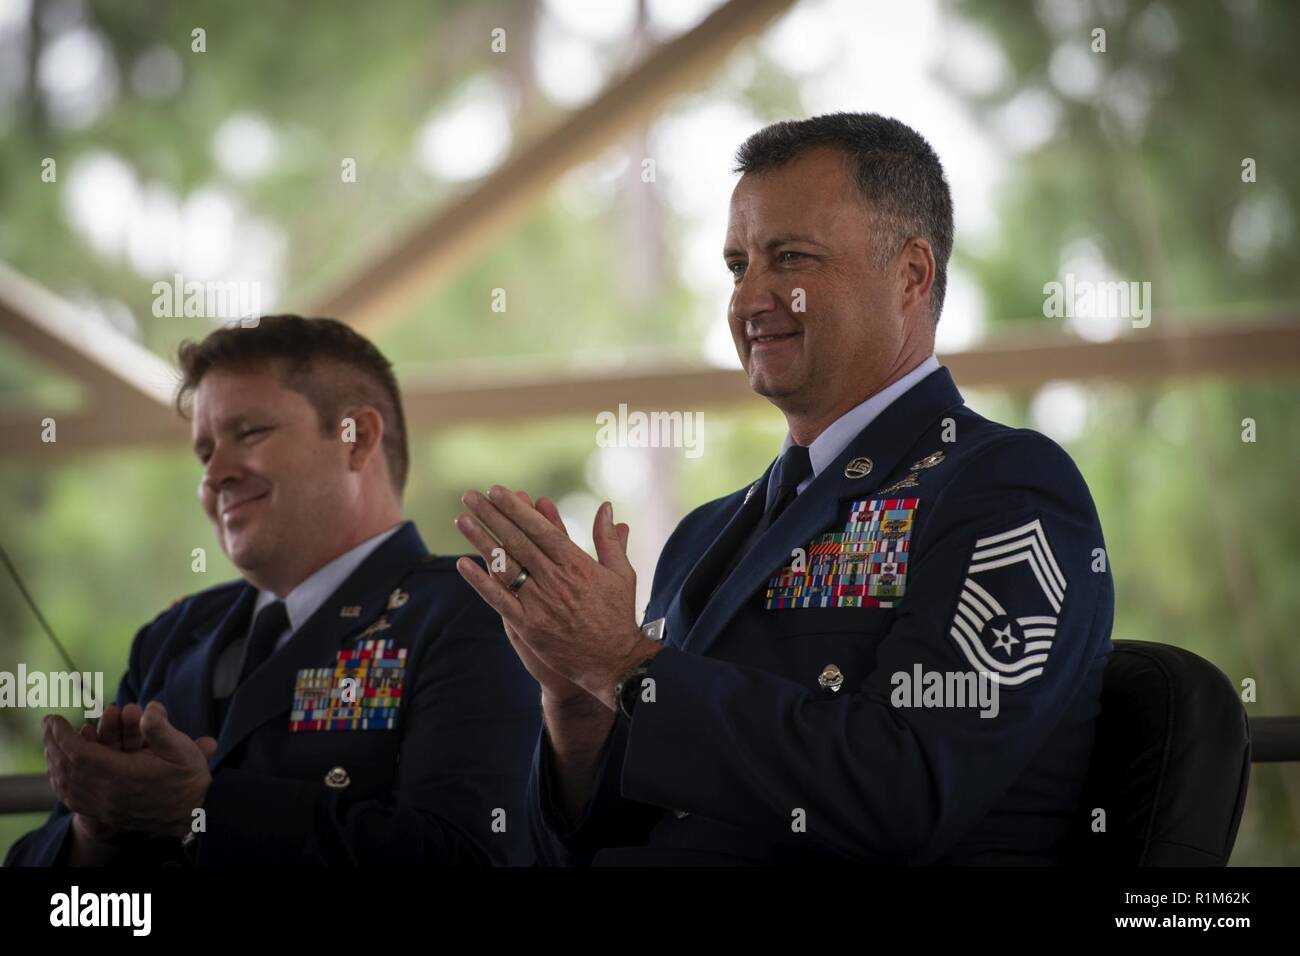 Chief Master Sgt. Michael West, right, a special tactics combat controller with the 24th Special Operations Wing, applauds during his retirement ceremony at Hurlburt Field, Florida, Oct. 19, 2018. For 30 years, West was actively engaged in nearly every operation with a U.S. presence, beginning with Operation DESERT STORM to the more recent Operations FREEDOM SENTINEL and RESOLUTE SUPPORT in Afghanistan. - Stock Image